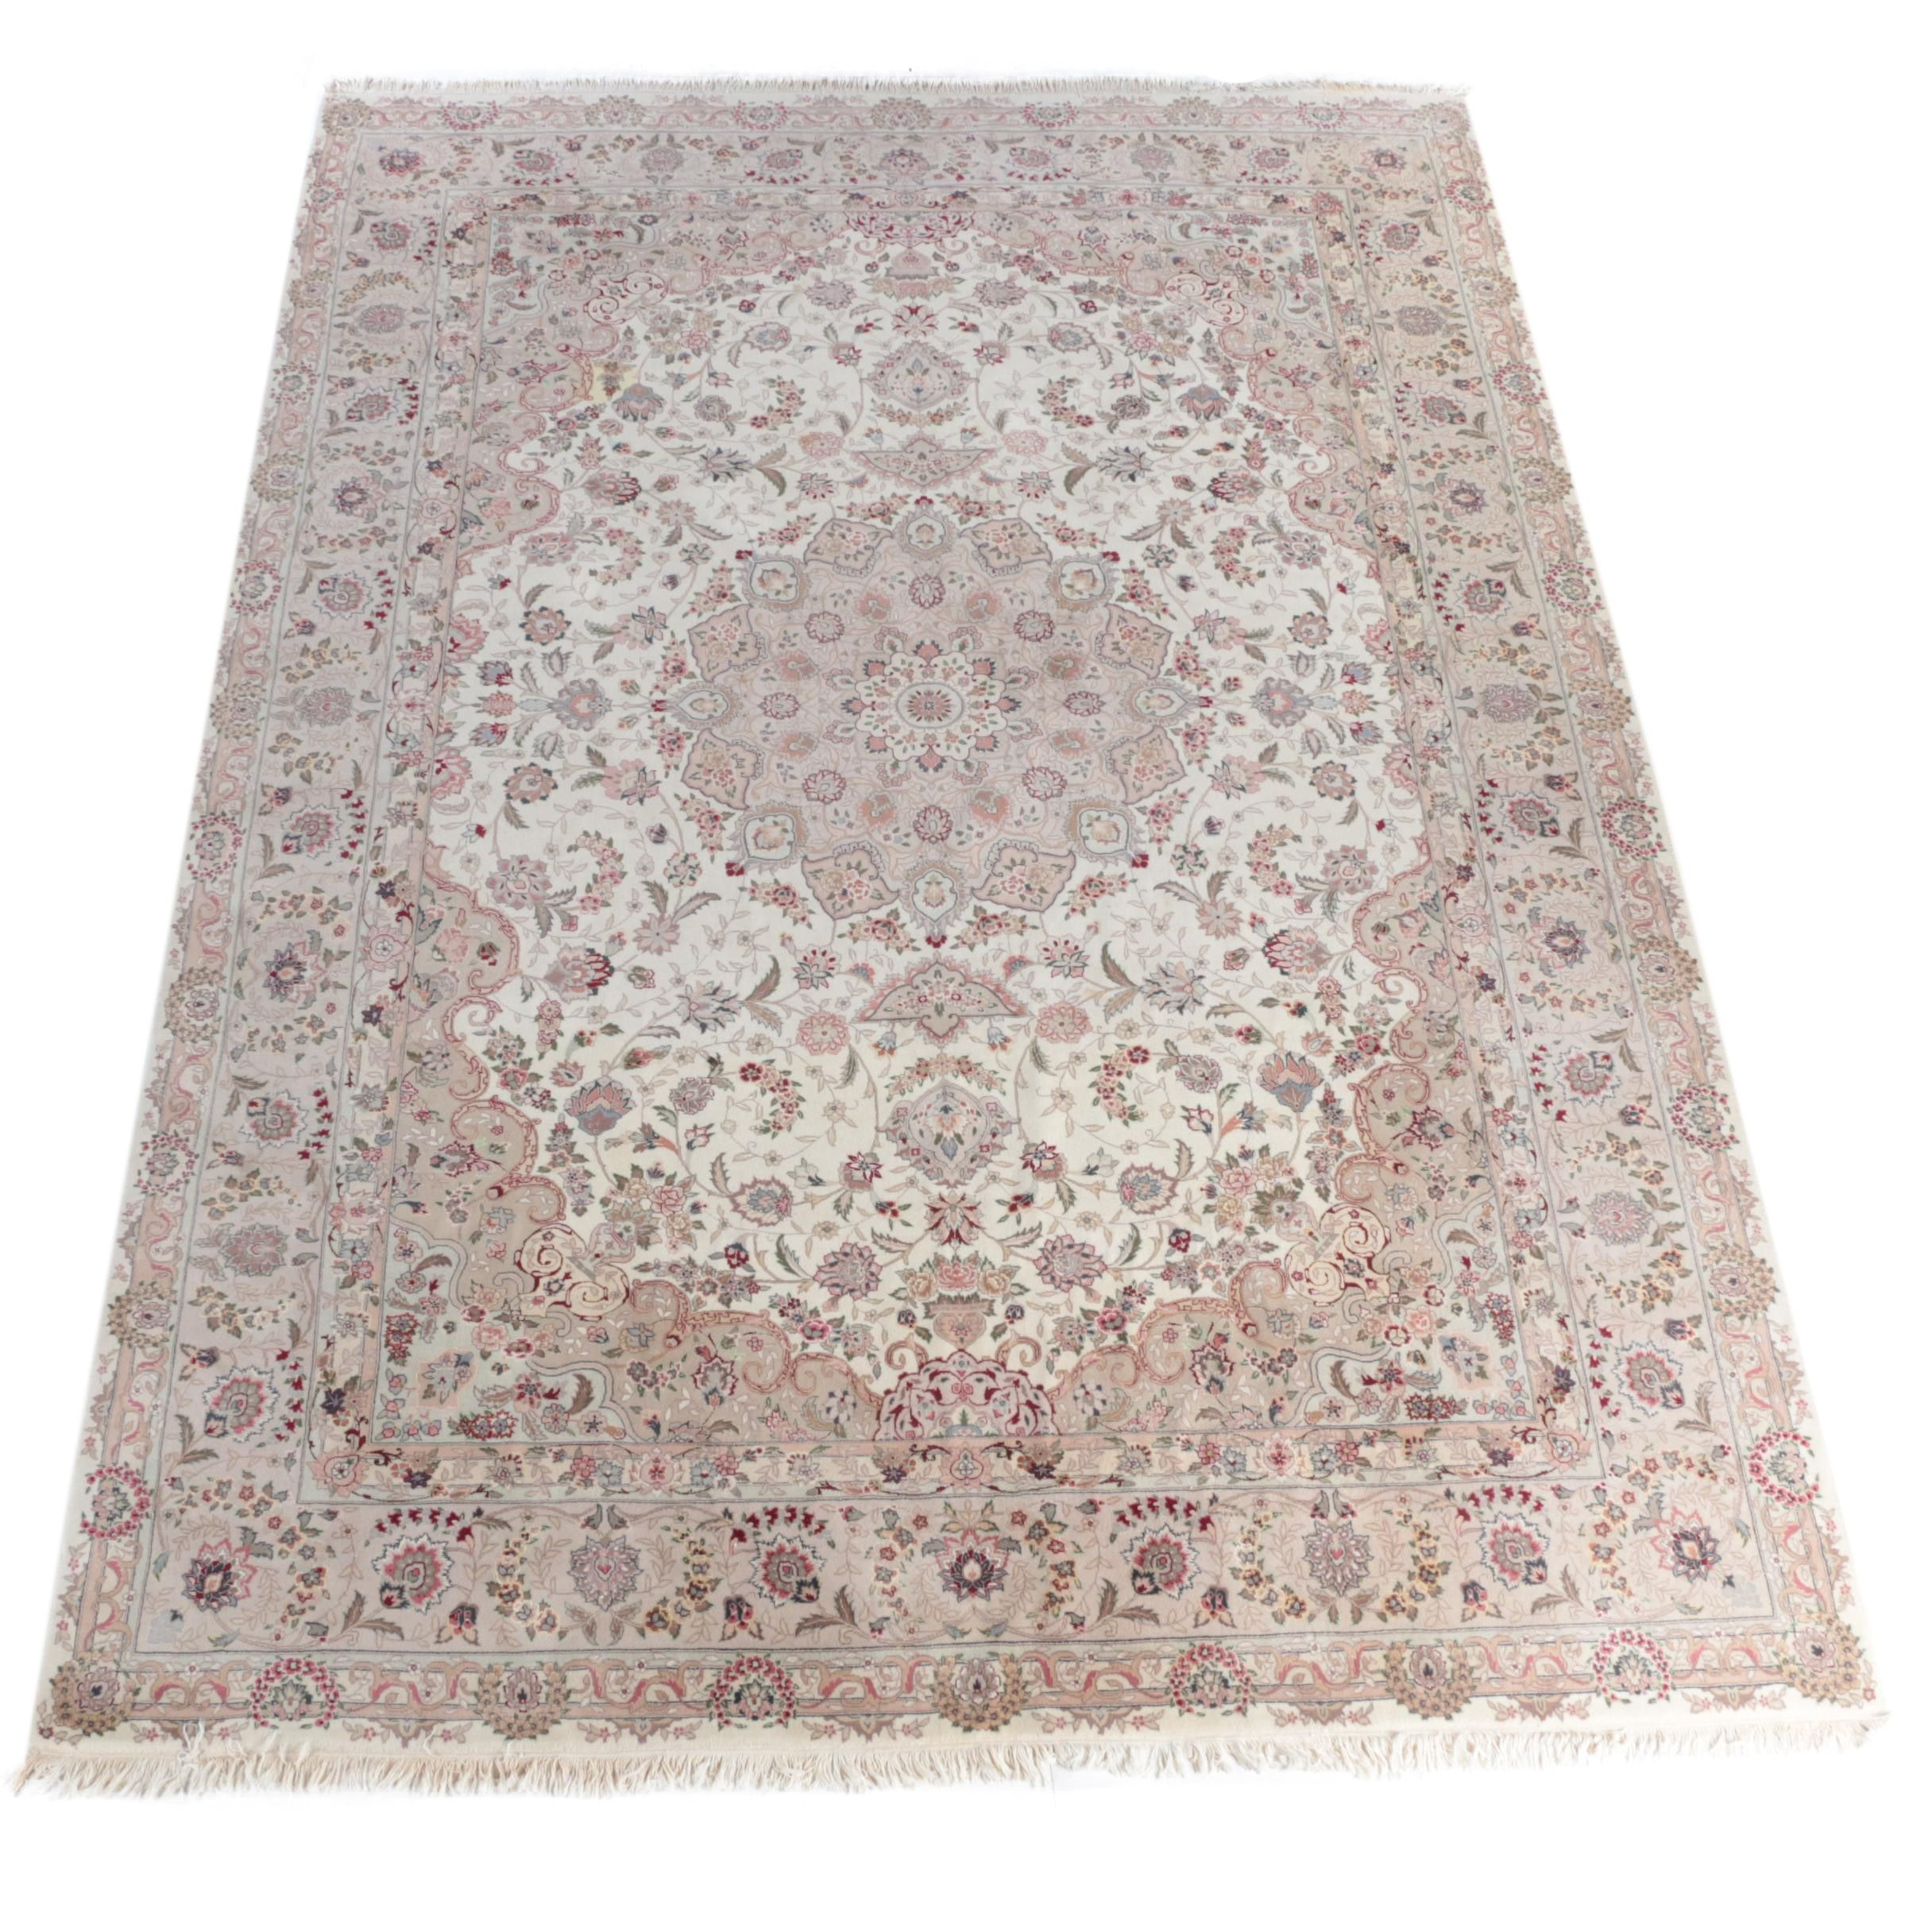 Finely Hand-Knotted Persian Nain Wool Room Size Rug